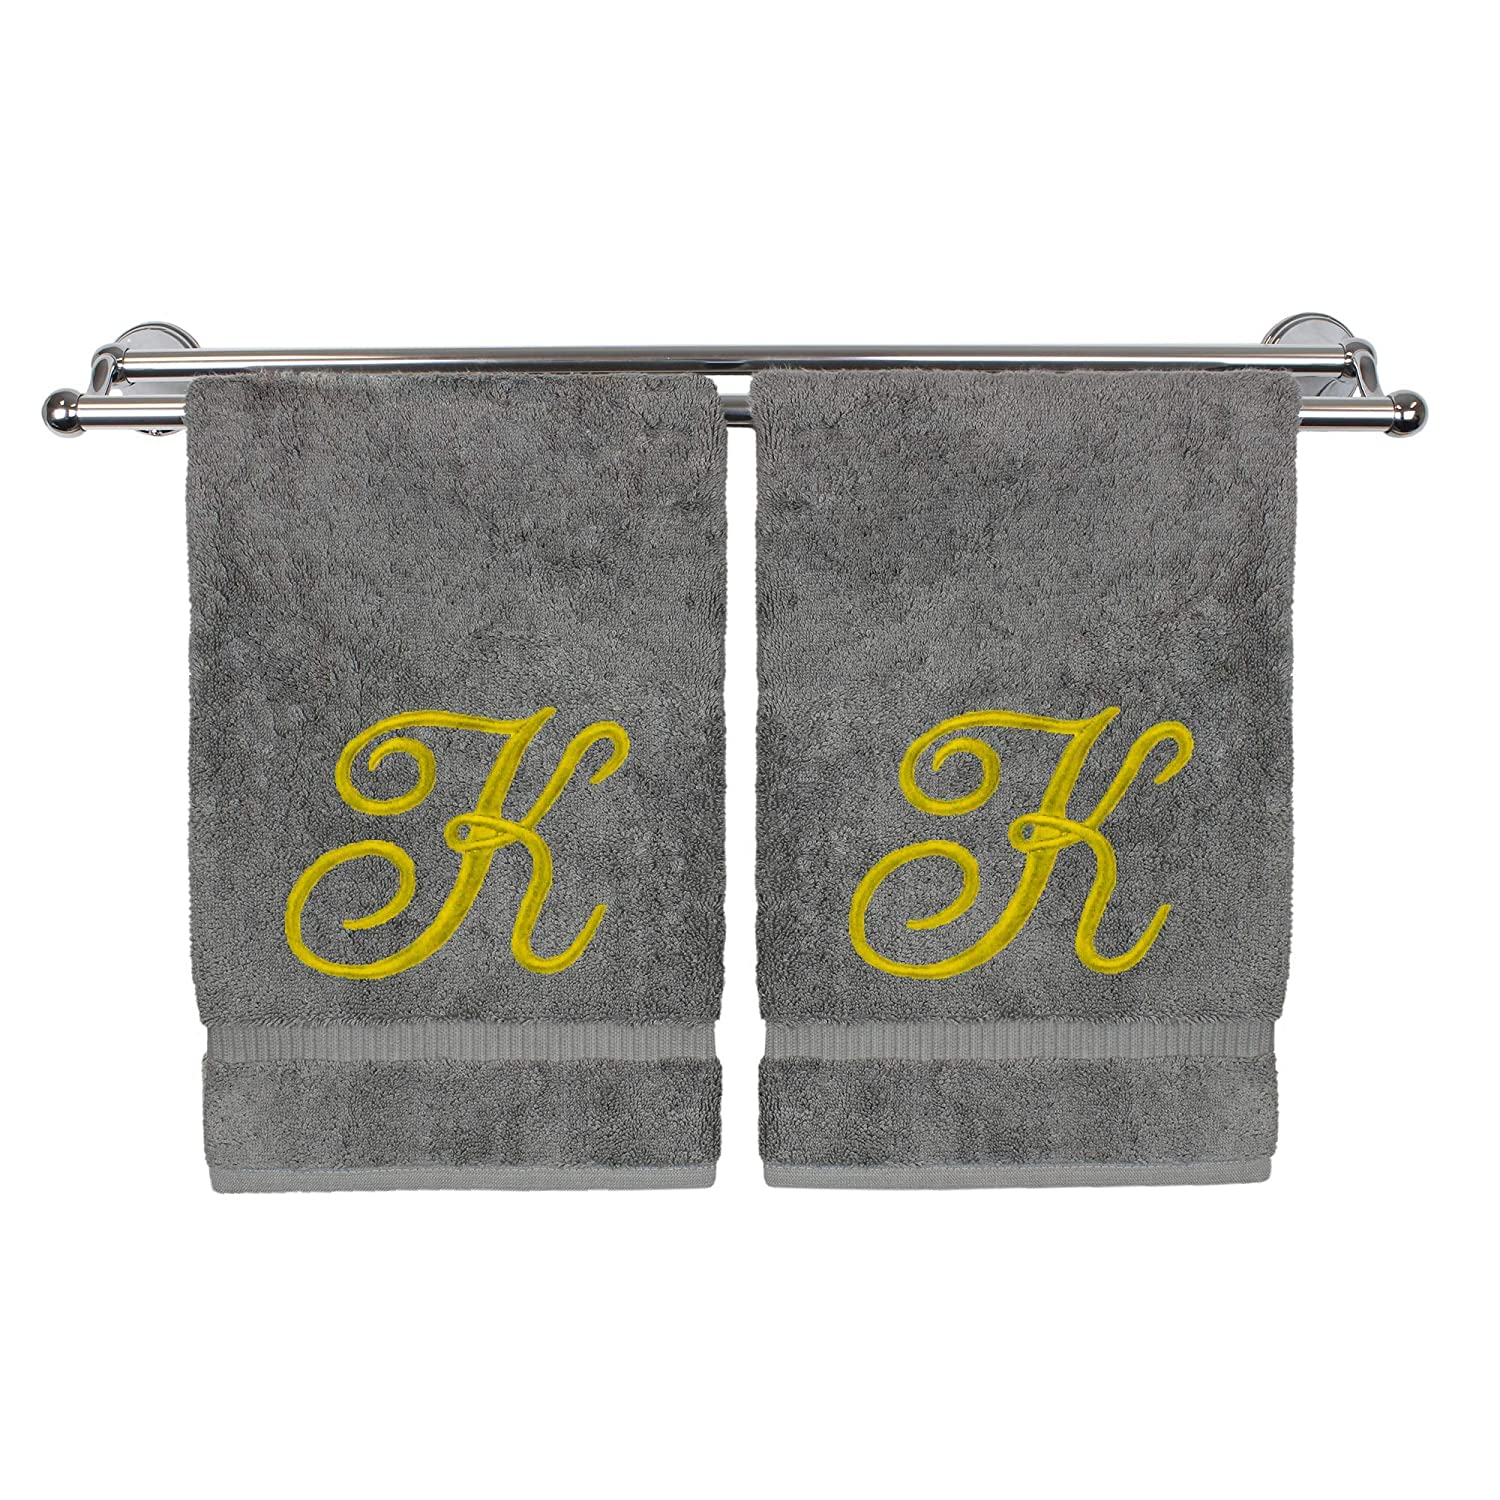 Monogrammed Hand Towel, Personalized Gift, 16 x 30 Inches - Set of 2 - Gold Embroidered Towel - Extra Absorbent 100% Turkish Cotton- Soft Terry Finish - for Bathroom, Kitchen and Spa- Script A White Bare Cotton 85-801-864-101